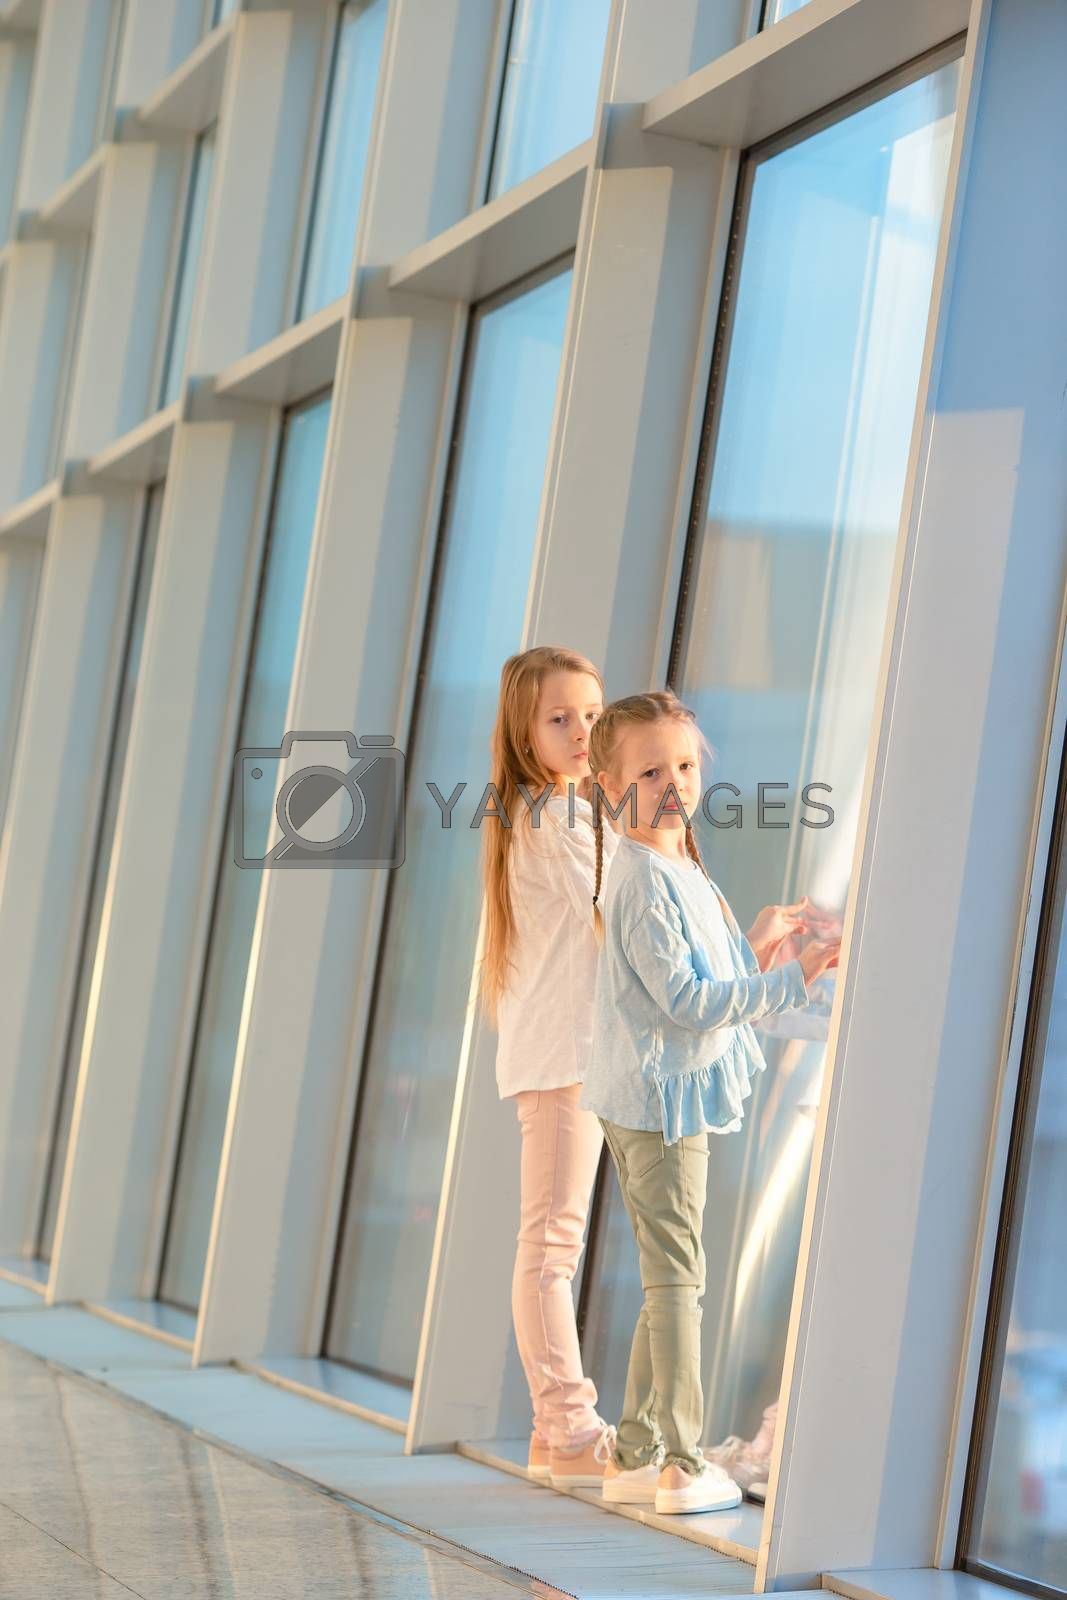 Girls in international airport waiting for boarding and looking at window on the aircrafts